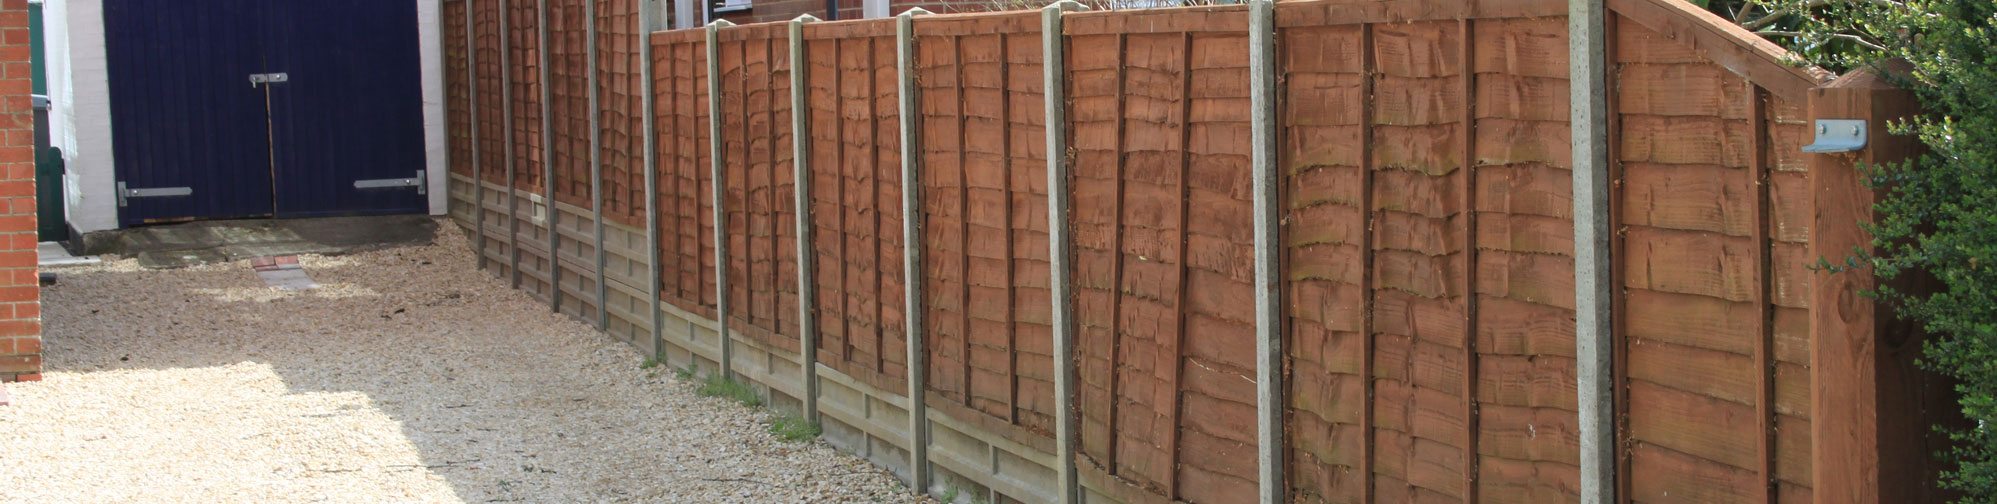 Fencing South East England